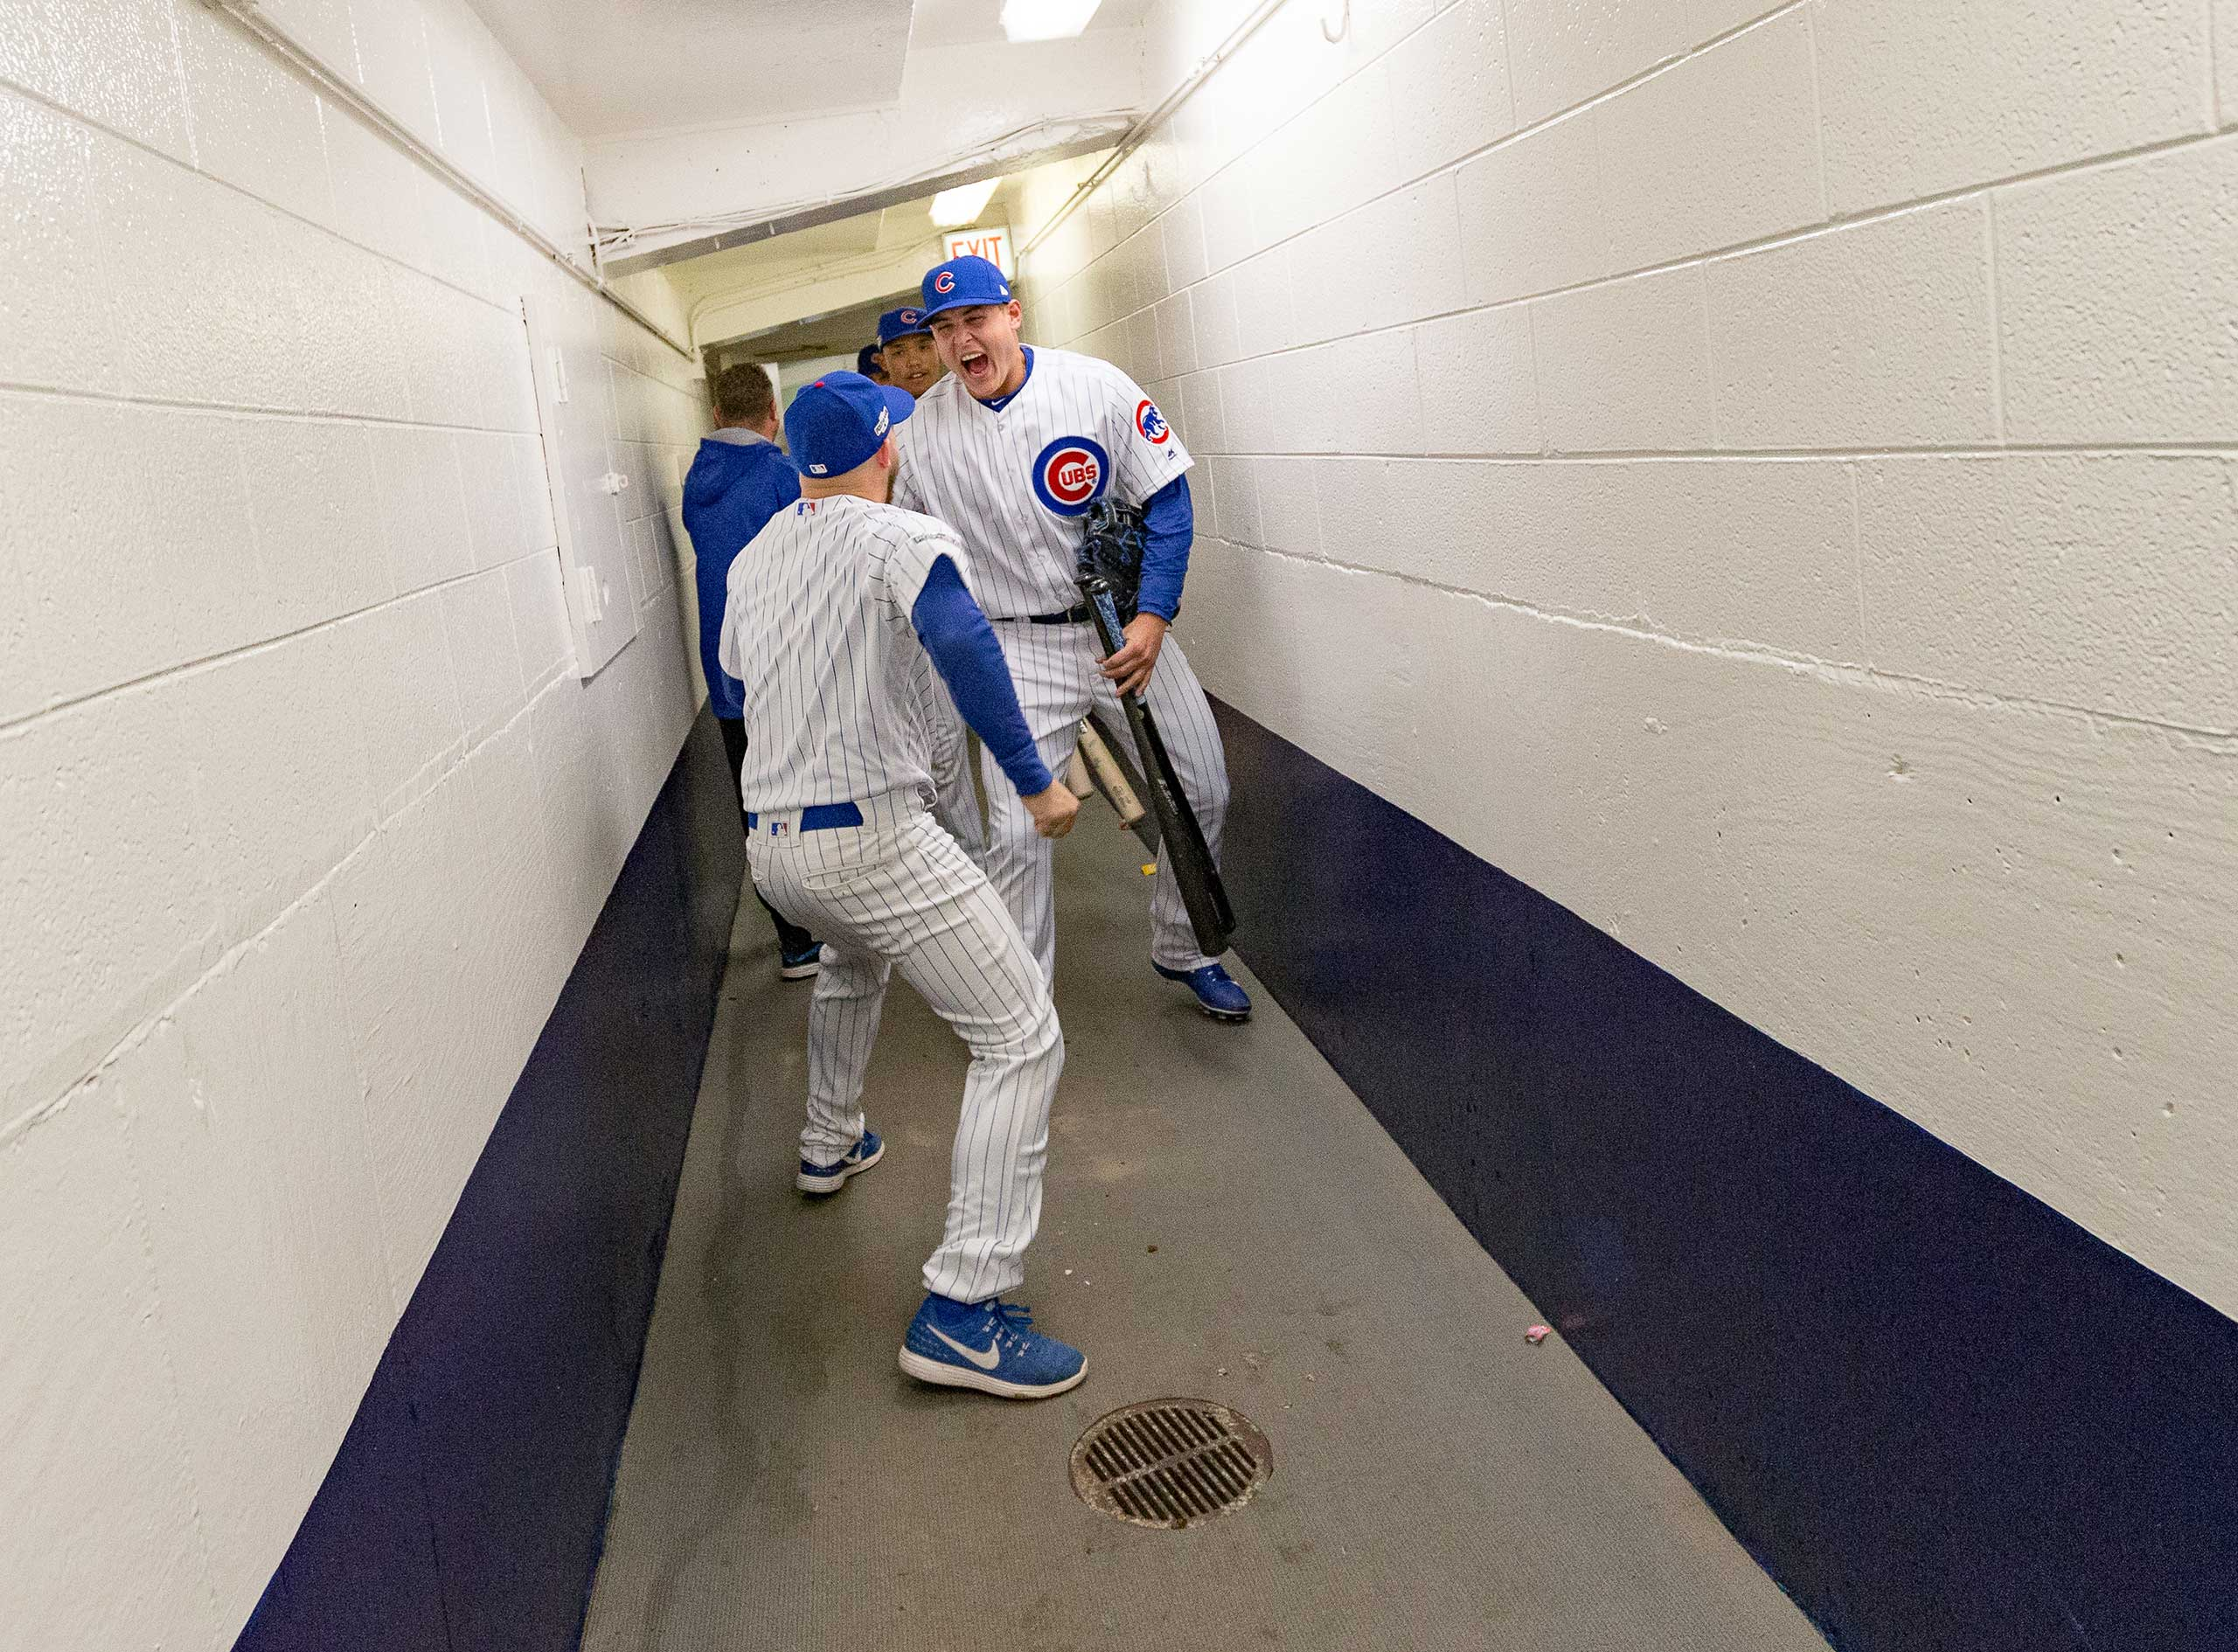 Cubs before Game 1 of the National League Division Series against the San Francisco Giants, Oct. 7, 2016.